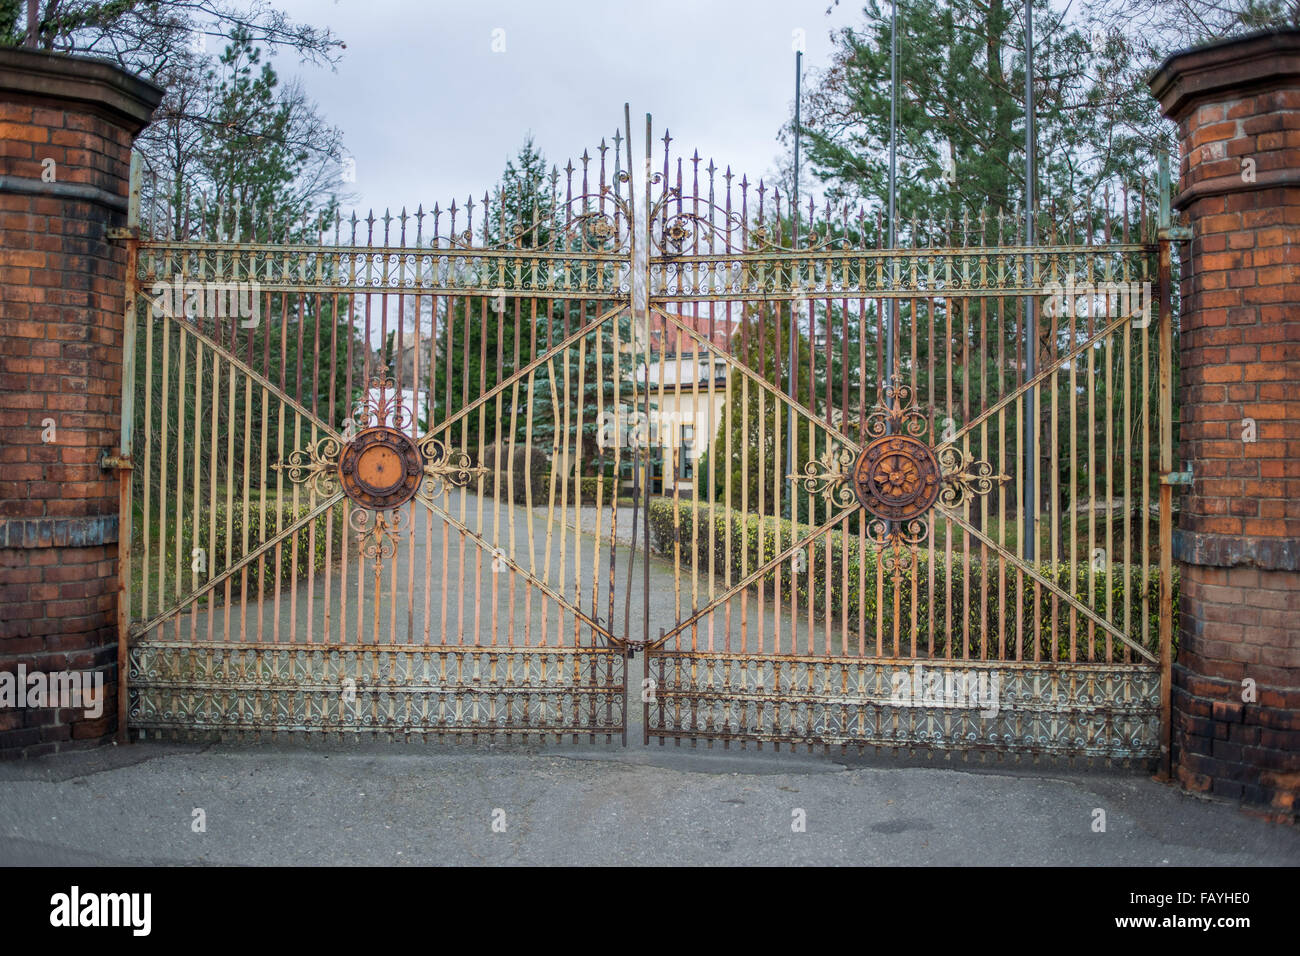 Old worn out ornamental iron gate - Stock Image